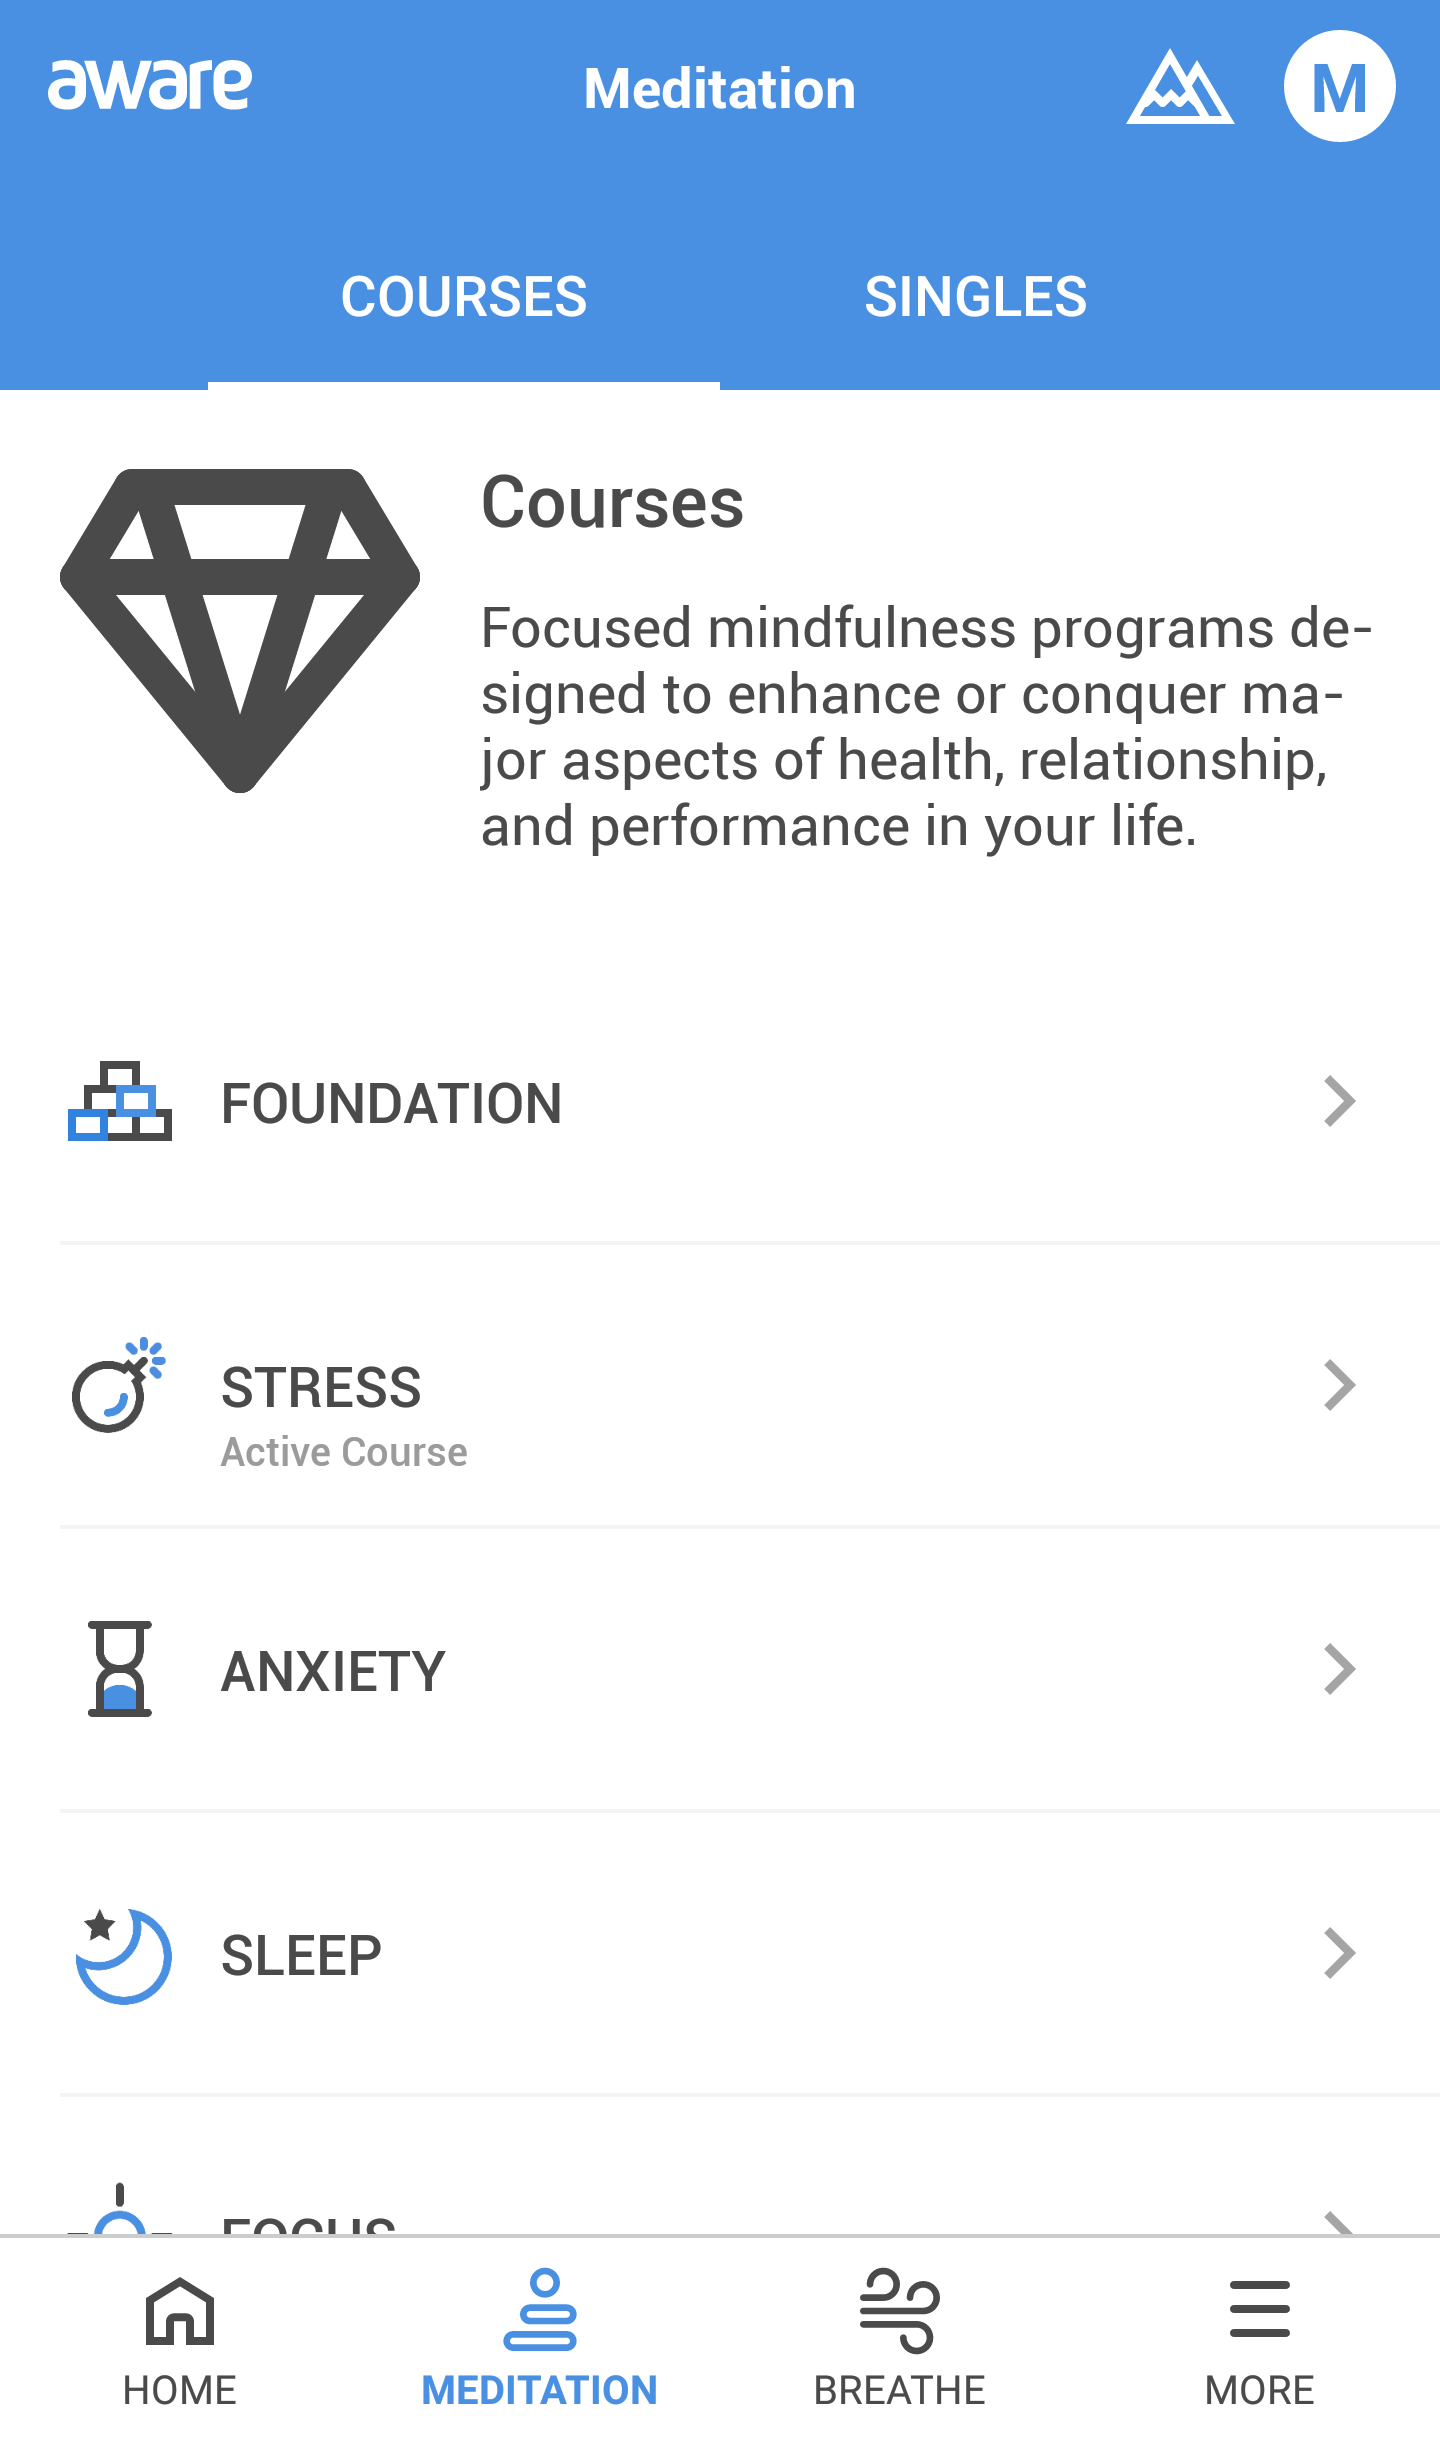 Screenshot of the Aware meditation app - courses